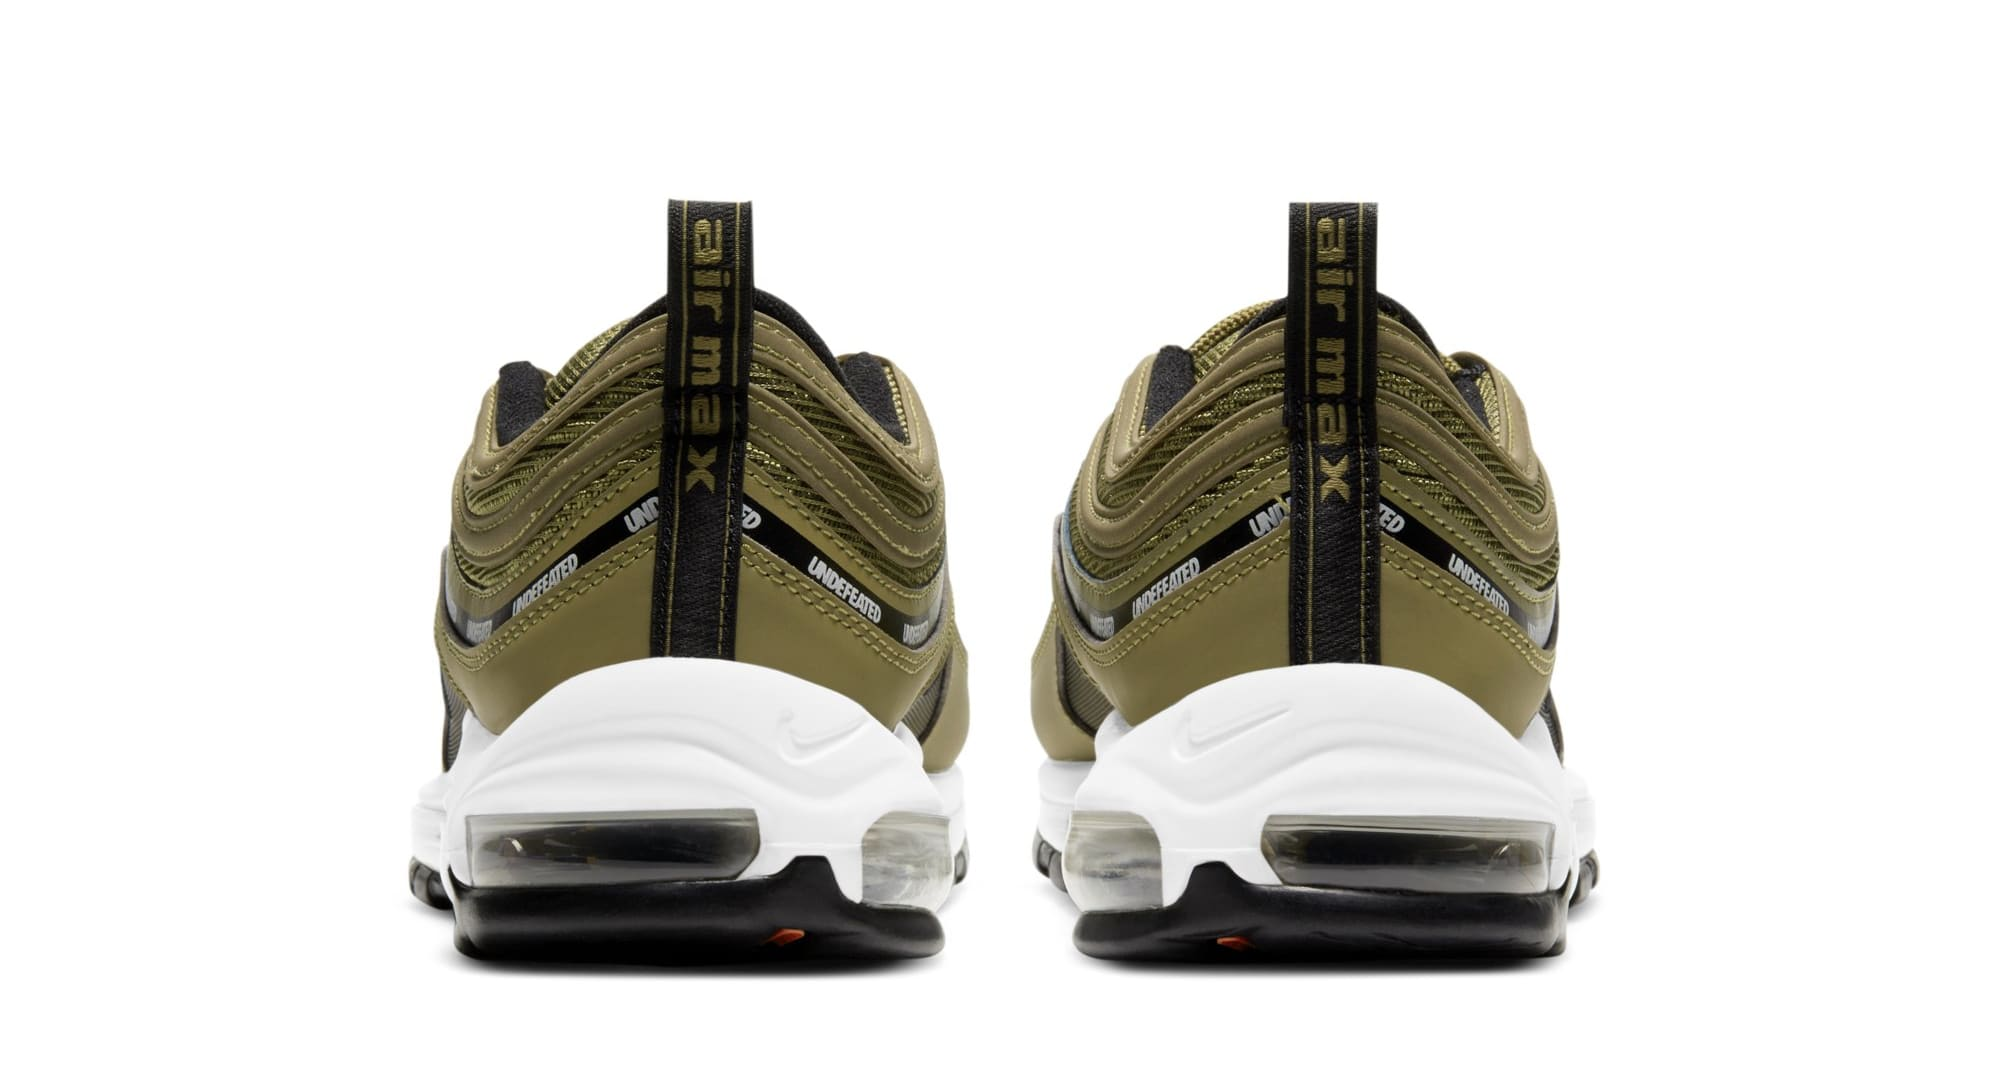 Undefeated x Nike Air Max 97 'Militia Green' DC4830-300 (Heel)